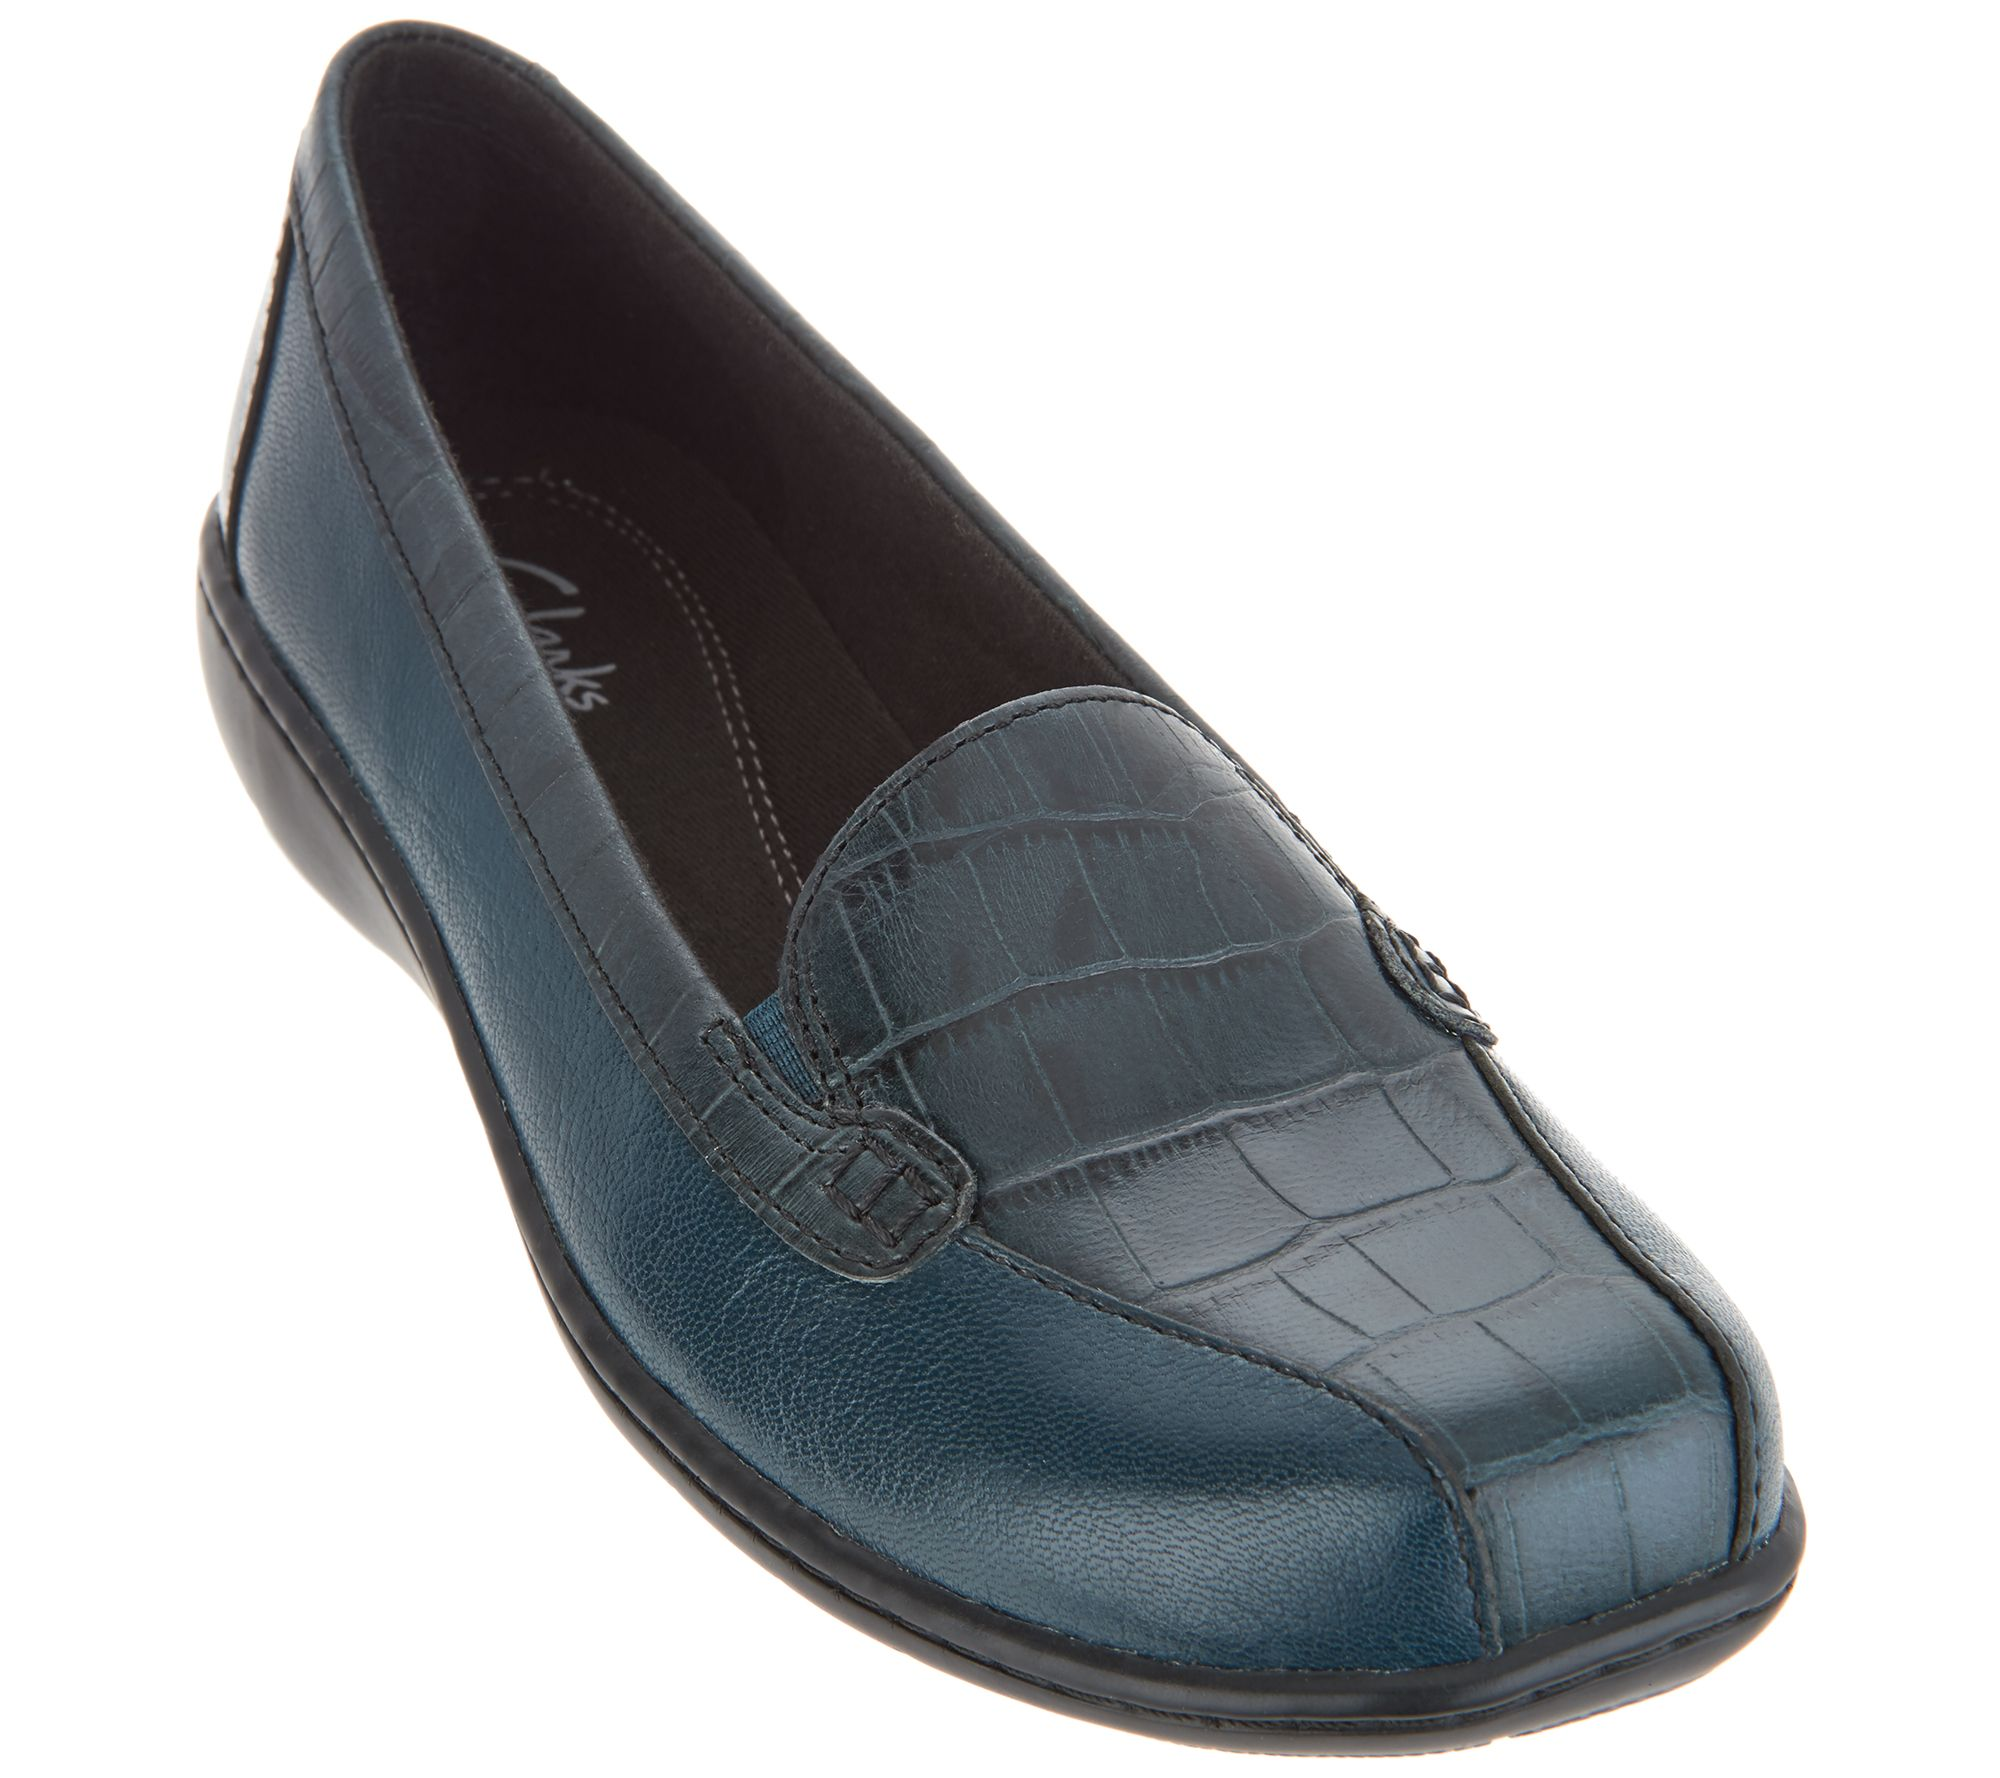 ad96729893f6a Clarks Collection Leather Slip-on Loafers - Bayou - Page 1 — QVC.com